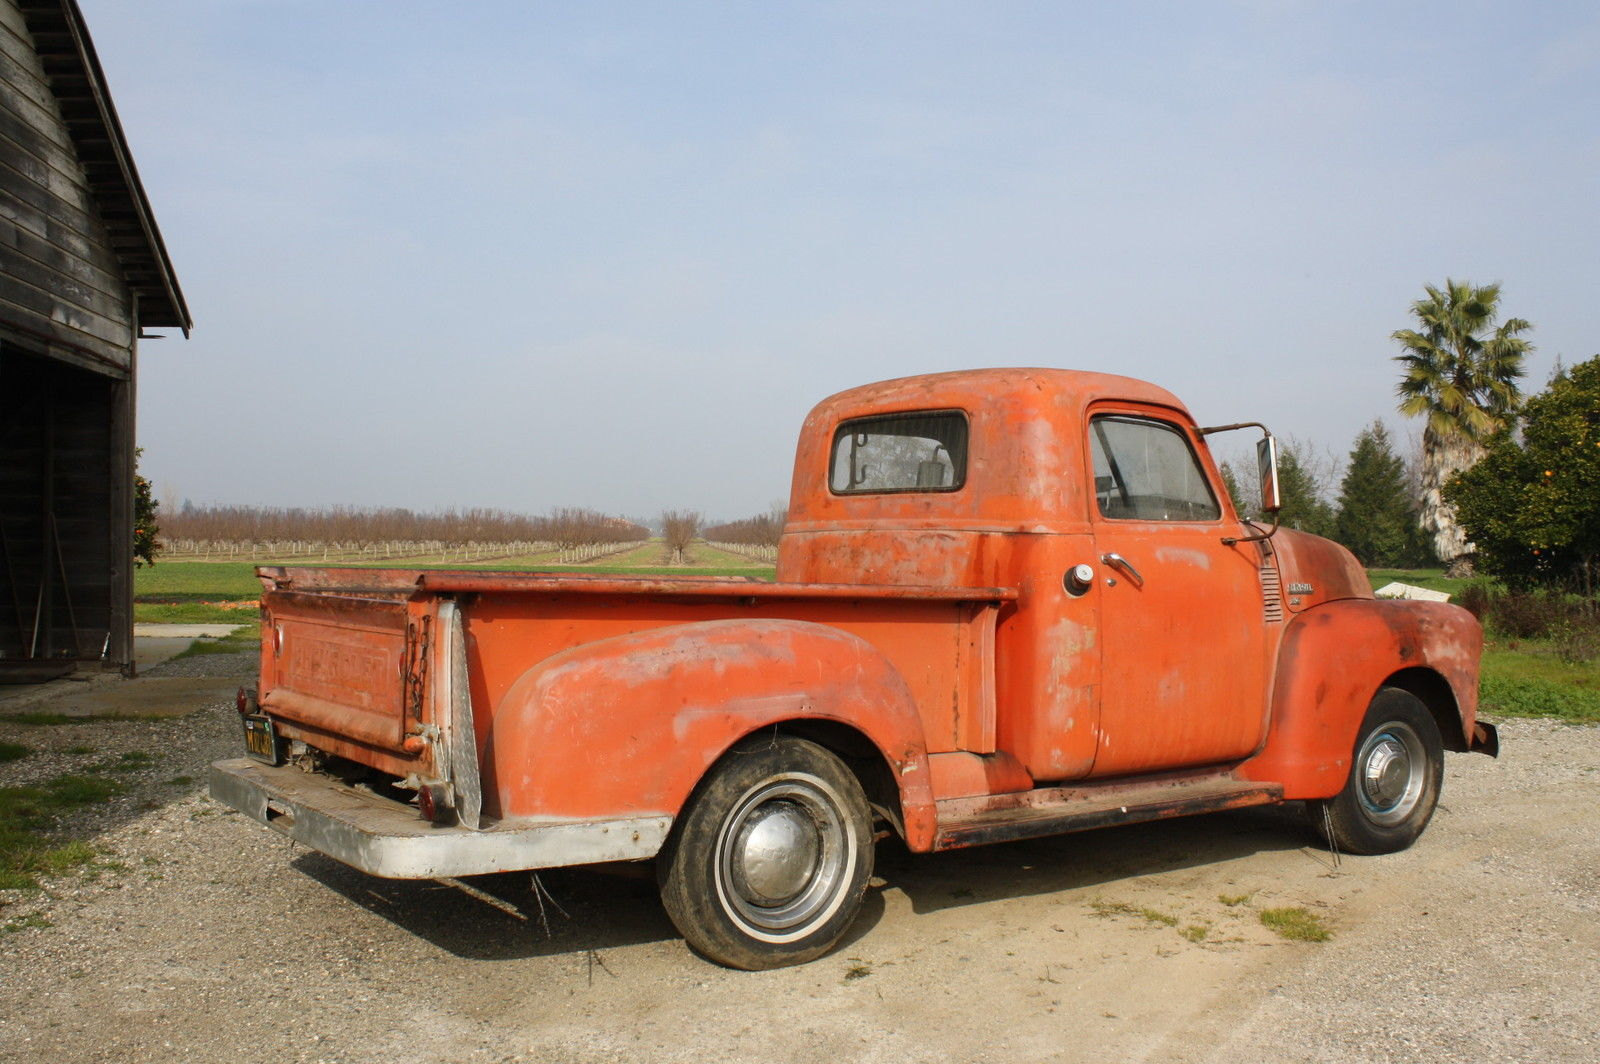 Chevrolet Pick Up Original Farm Truck besides Img M Rgaexsih as well Ford F Pickup Dv Mm as well  together with Website Page Body Style Number Chart. on 1955 chevrolet truck vin plate on original